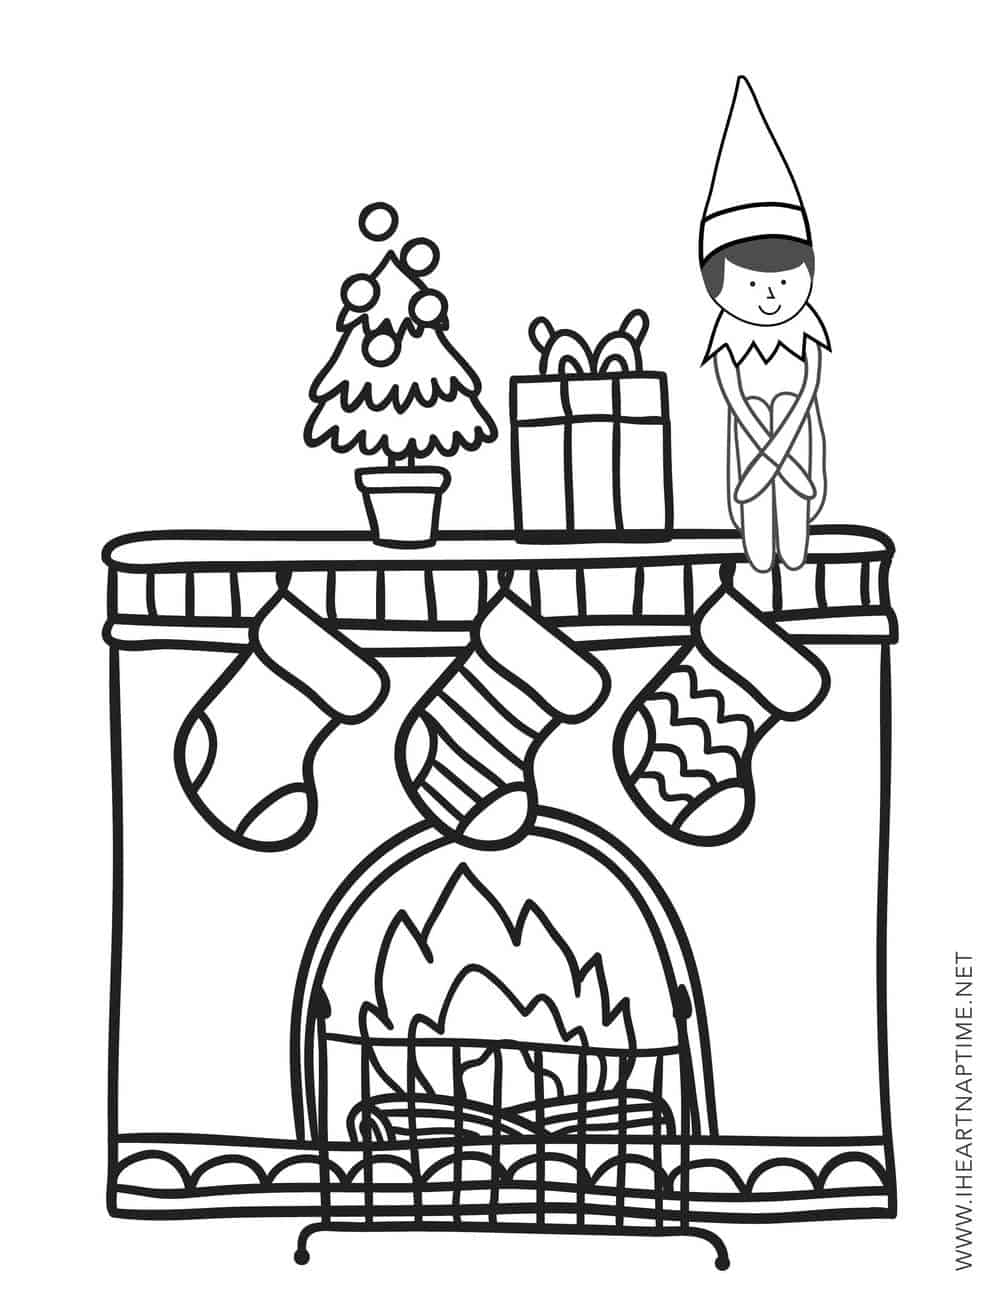 elf on the shelf coloring book elf on the shelf colouring pages belajar dari buaian shelf on coloring the book elf